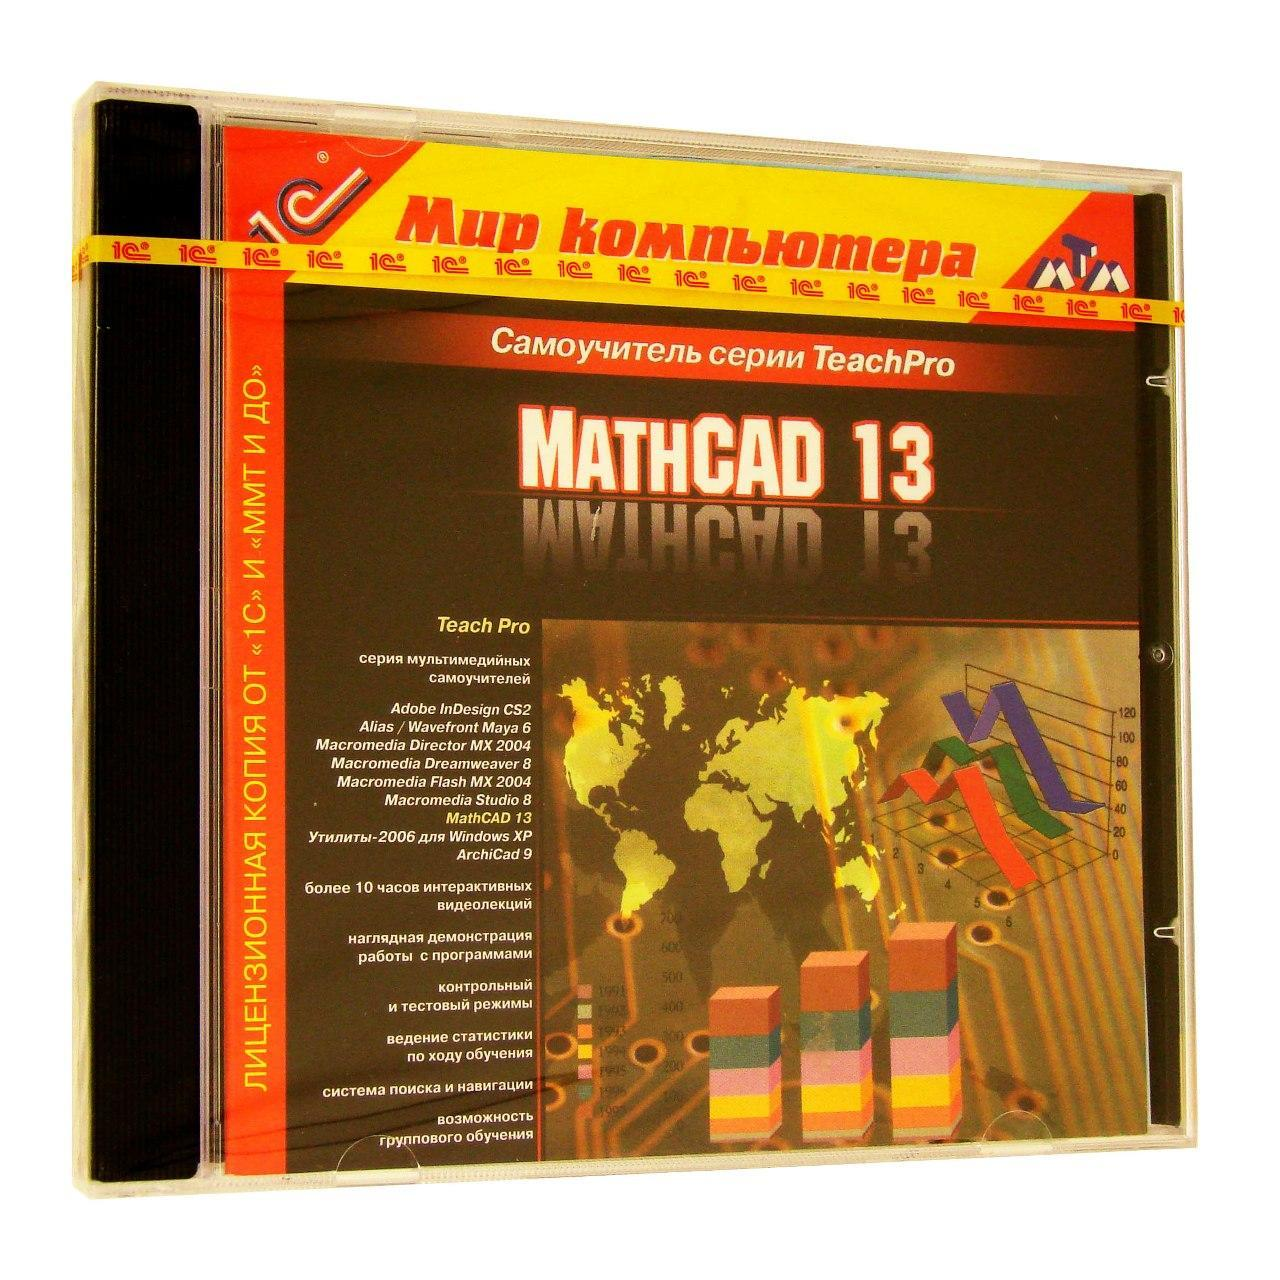 "Компьютерный компакт-диск Mathcad 13 TeachPro (PC), фирма ""1C"", 1CD"